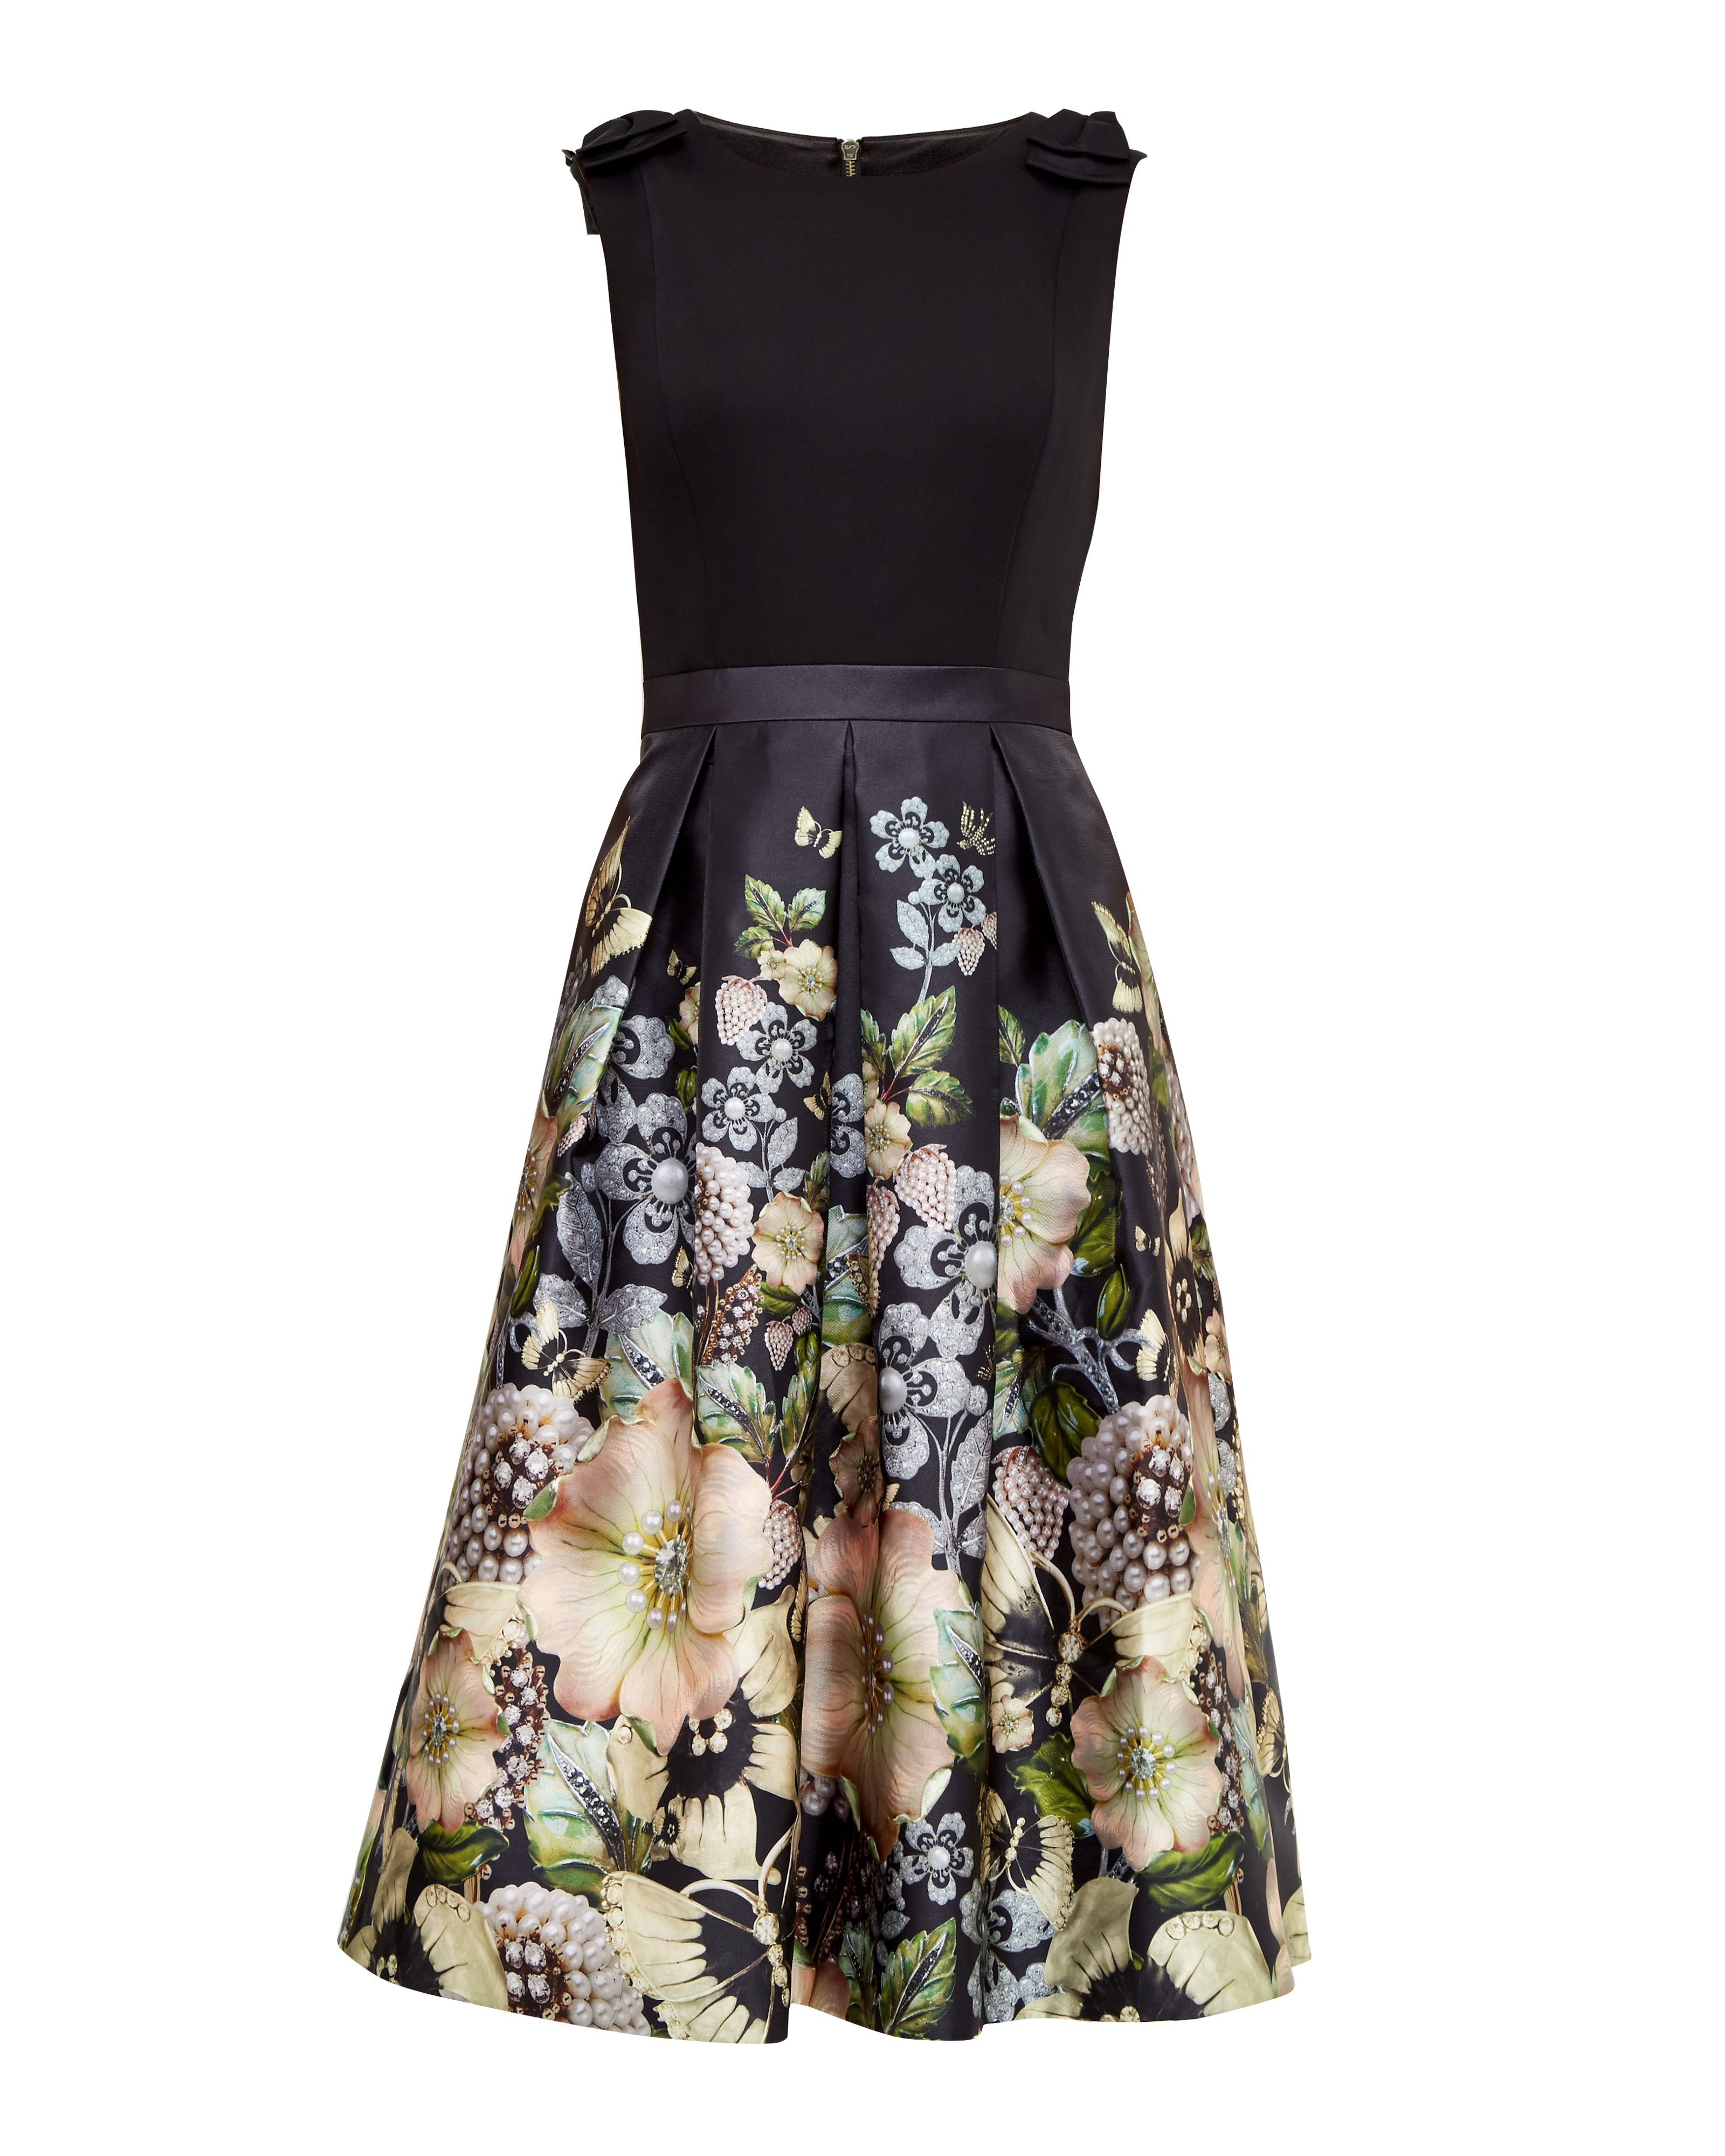 House of fraser designer dresses house and home design for Couture house dresses